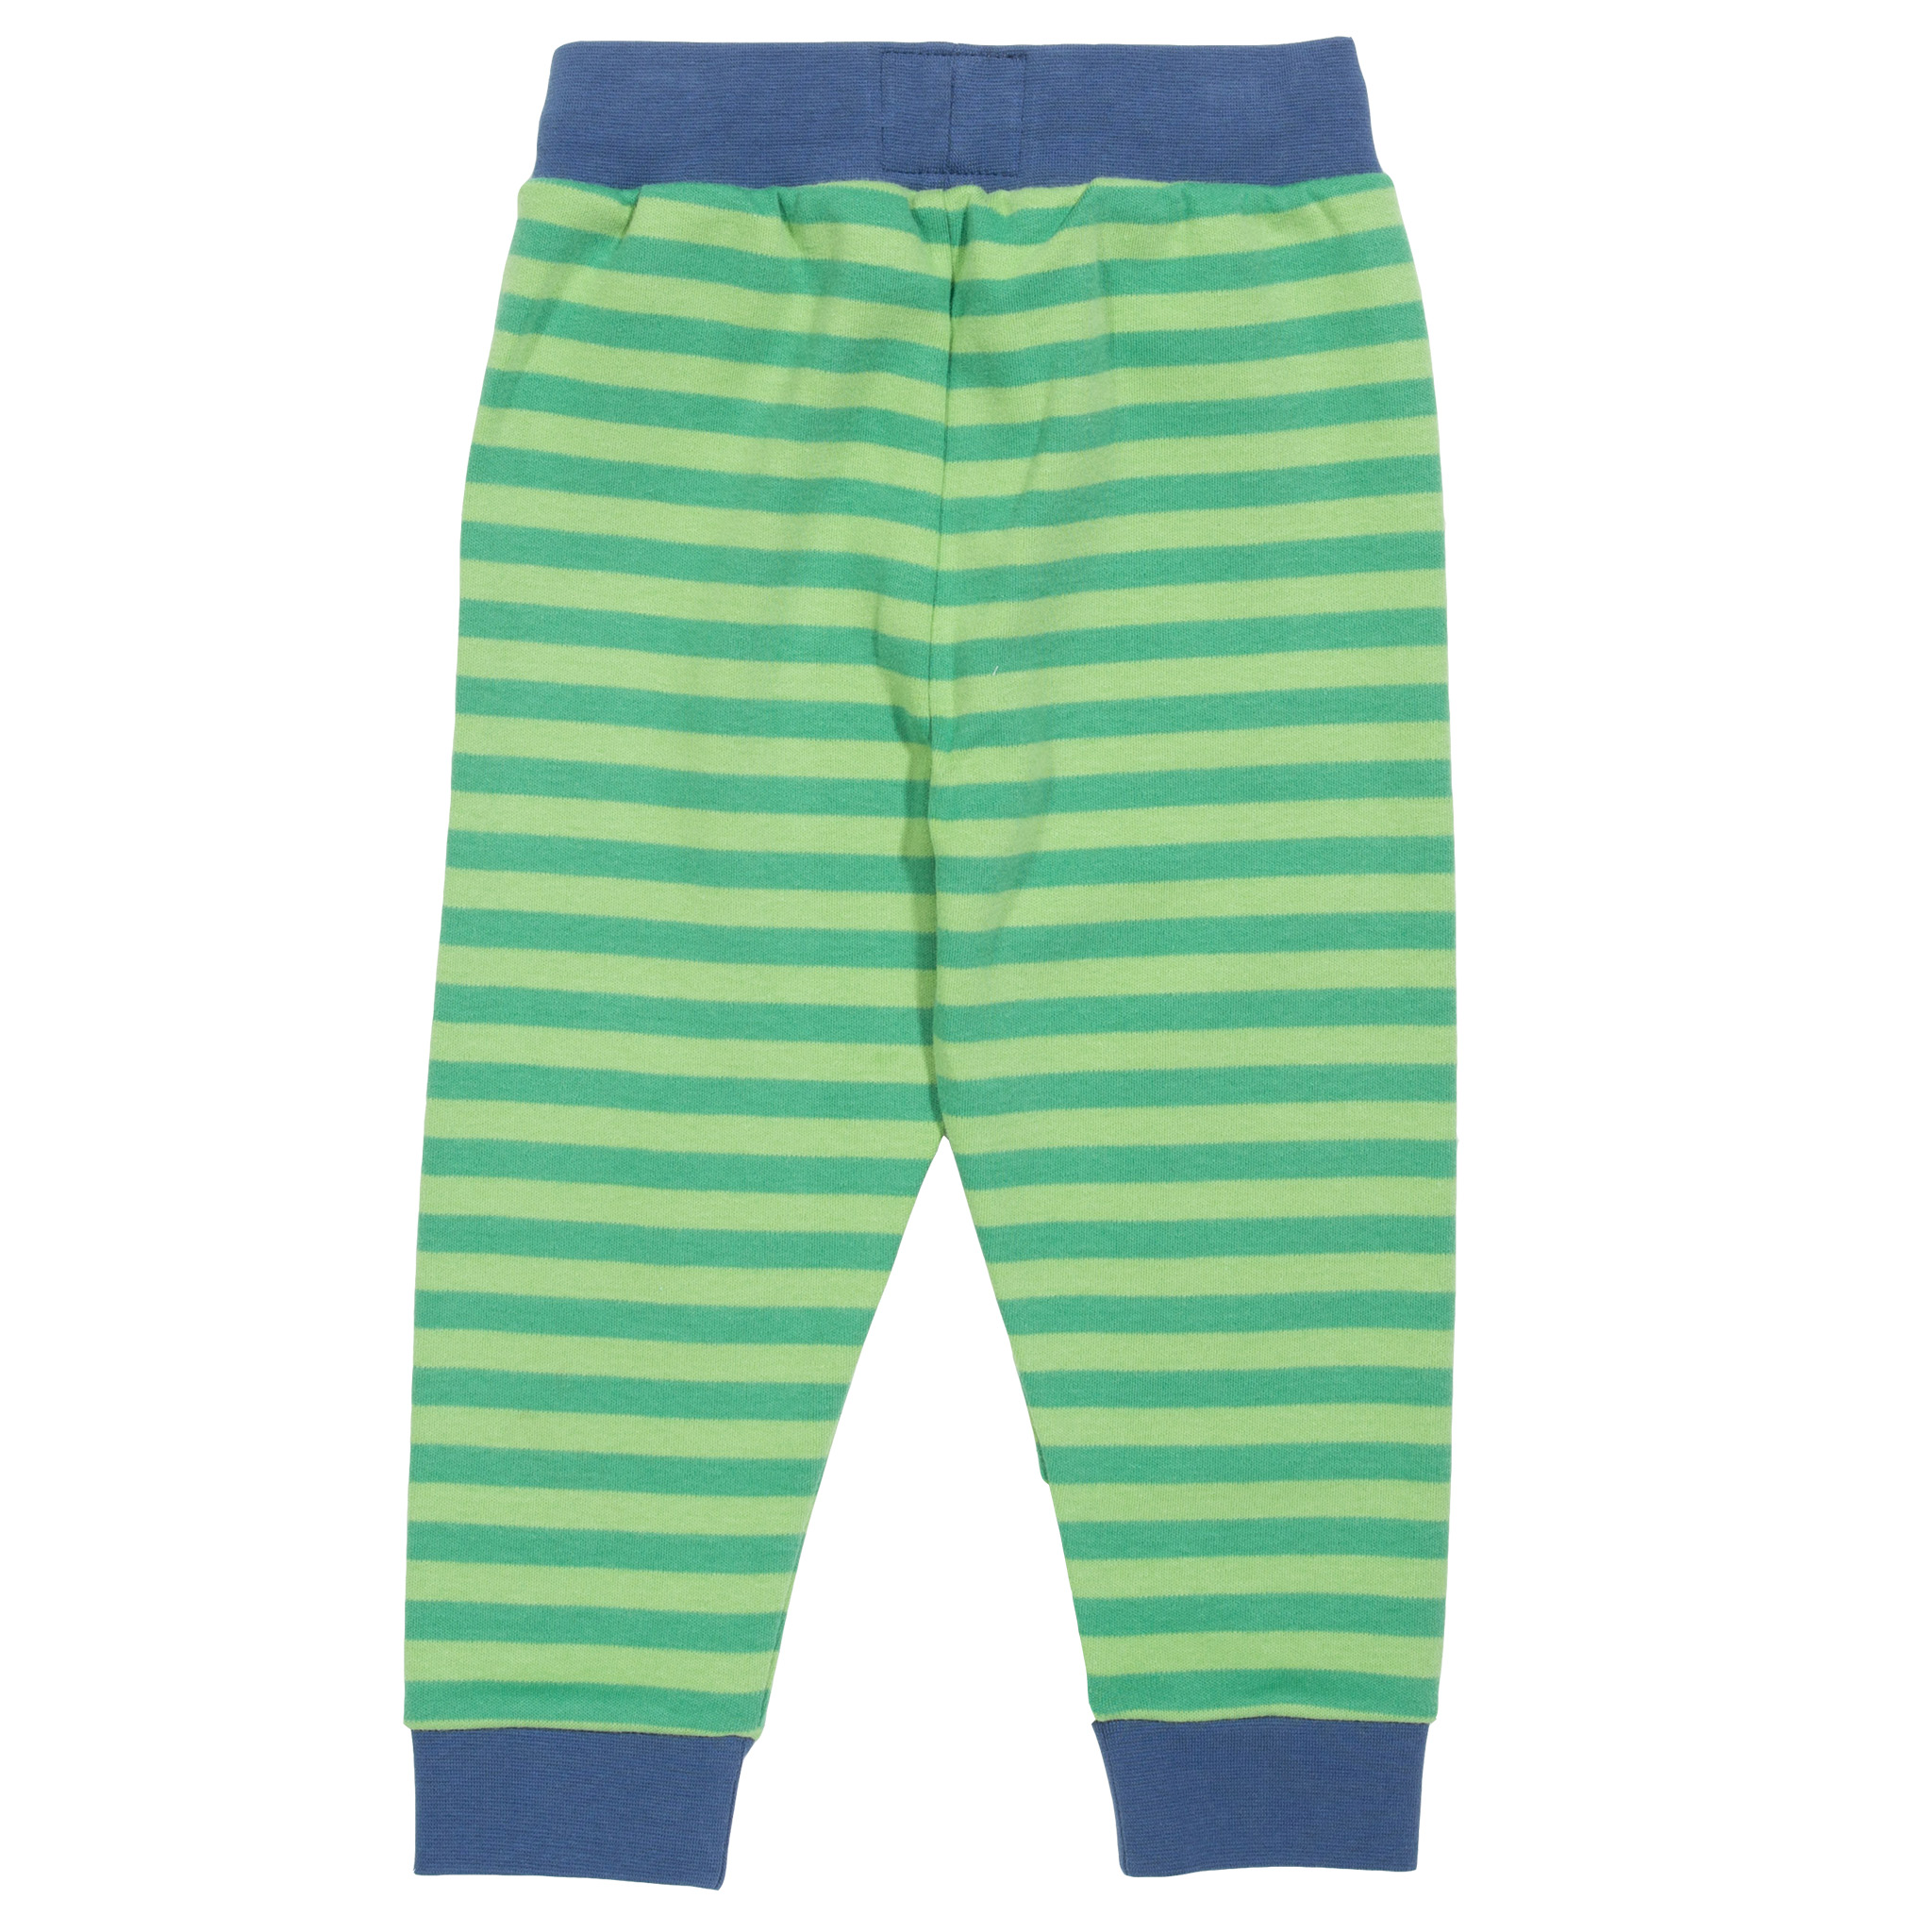 Kite Stripy Joggers-Green (was £26.00)